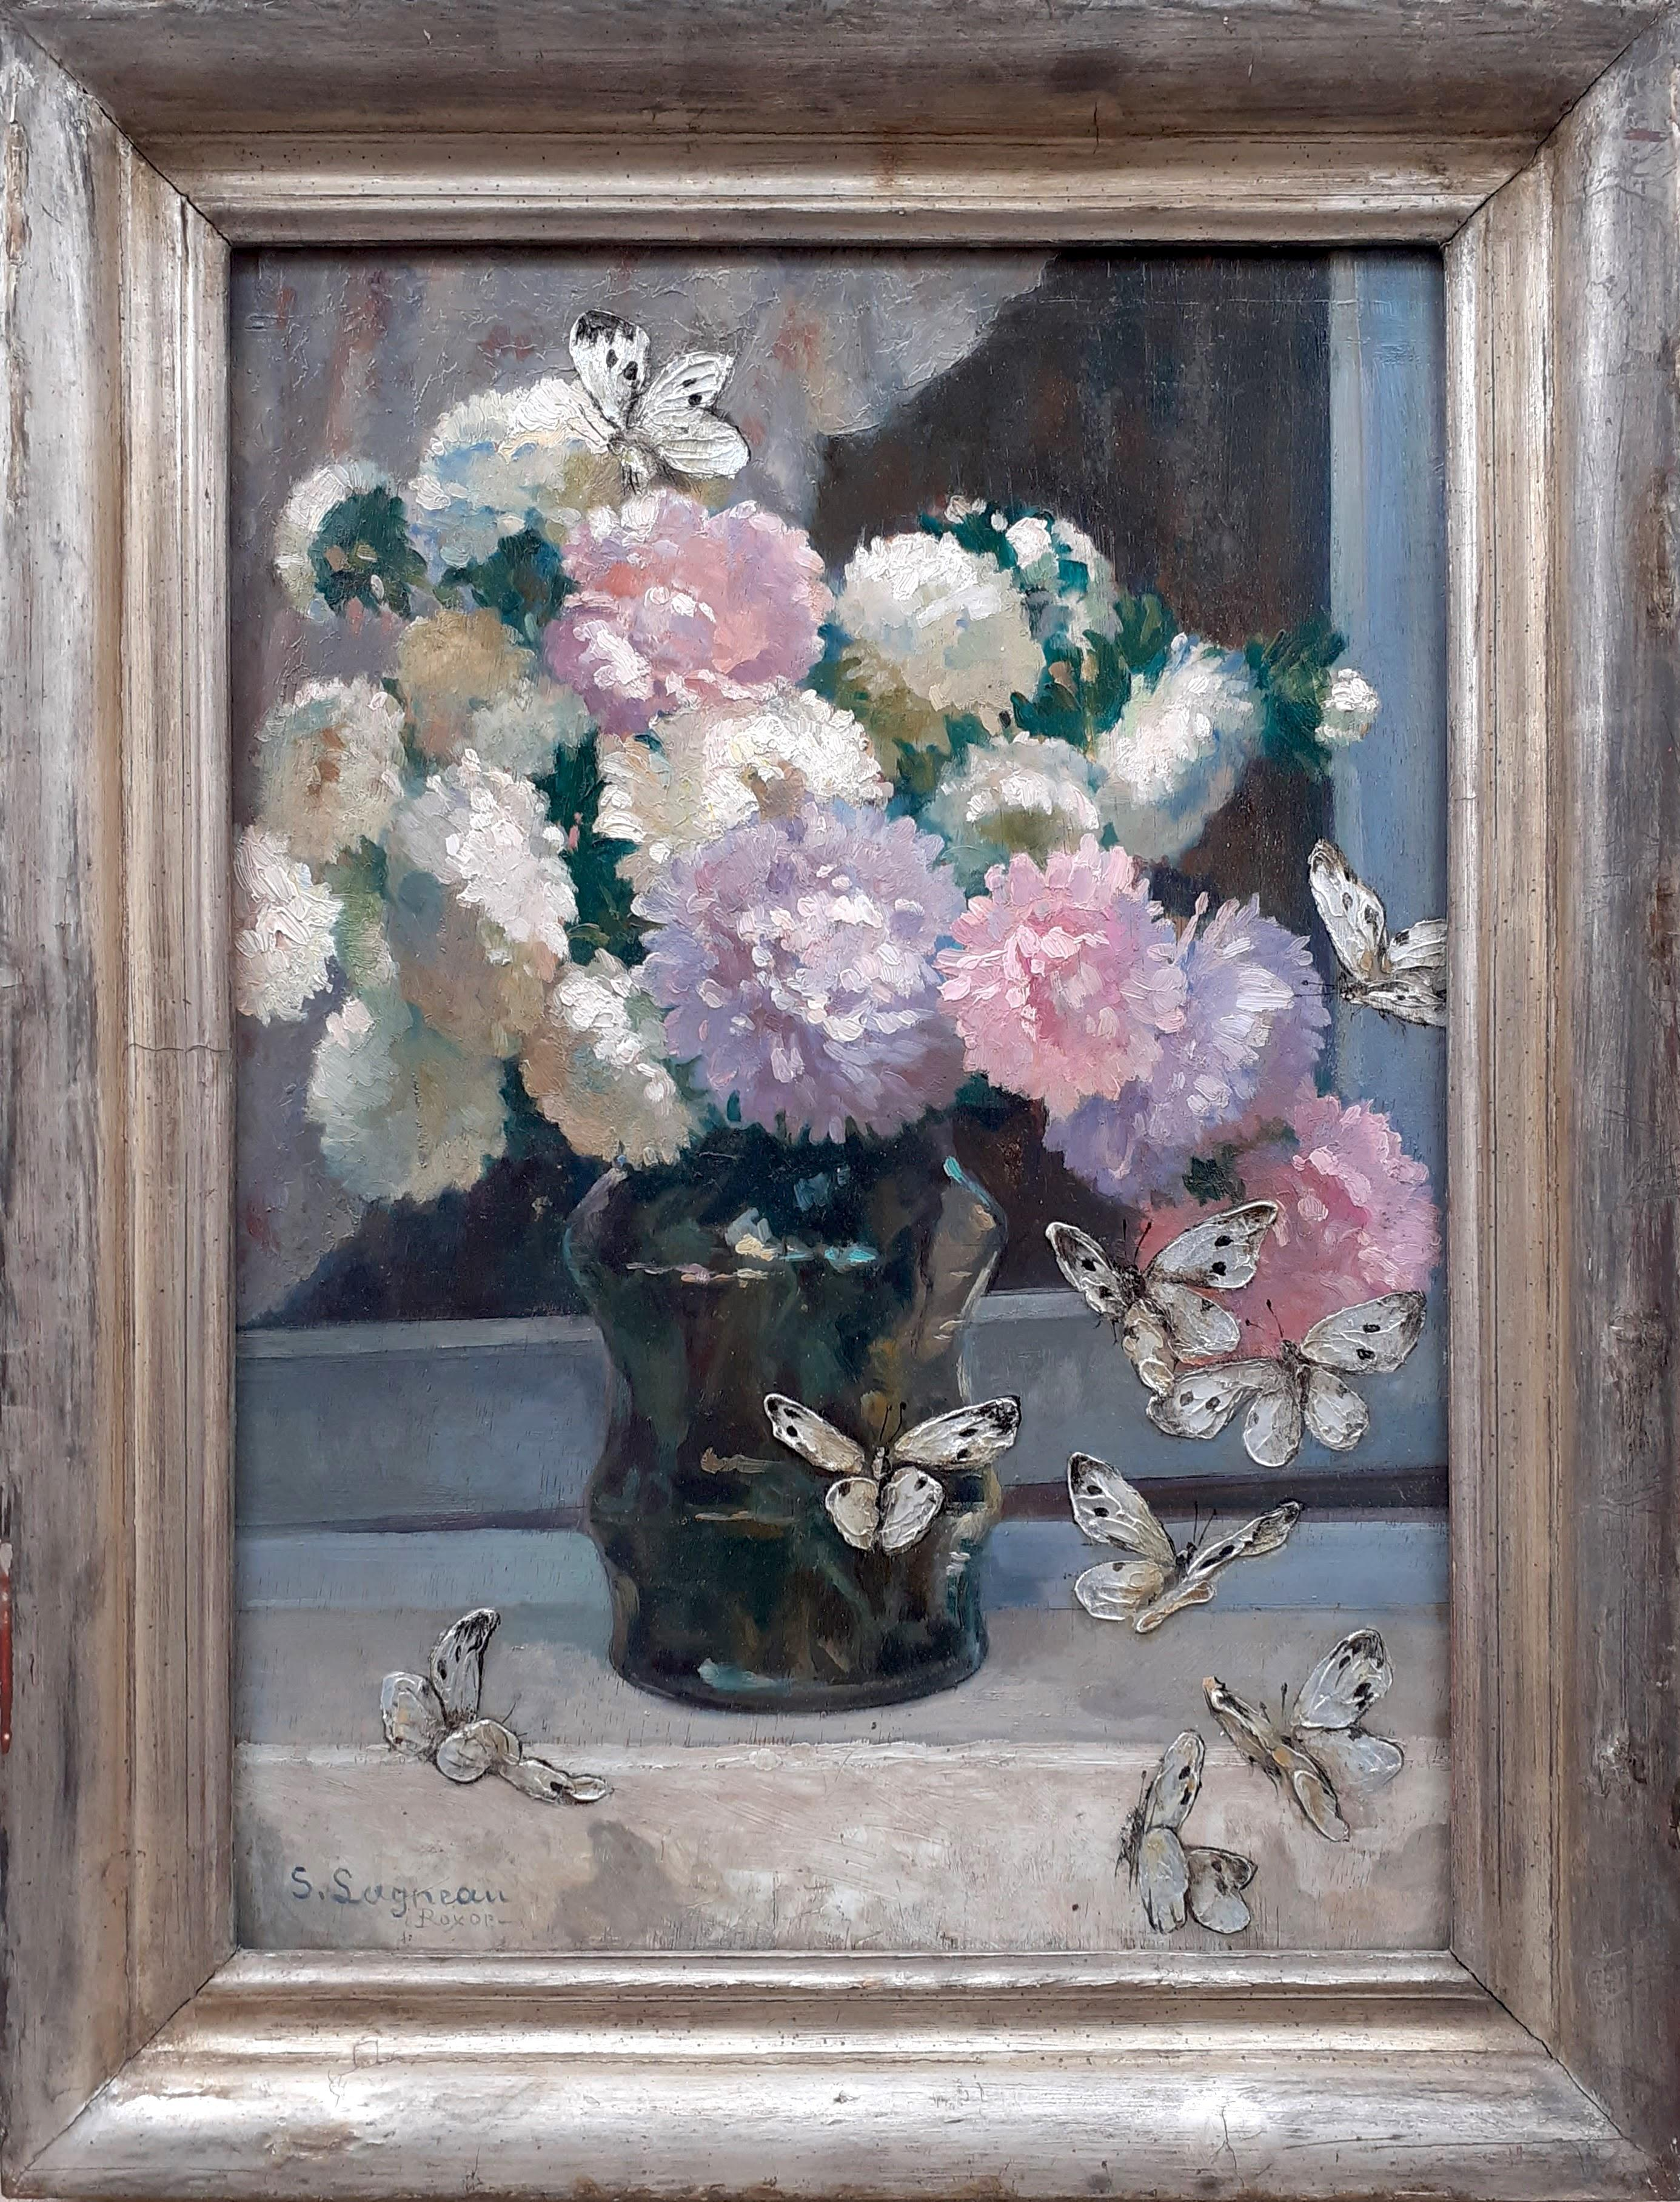 Flowers and Butterflies: French art nouveau floral still life oil painting